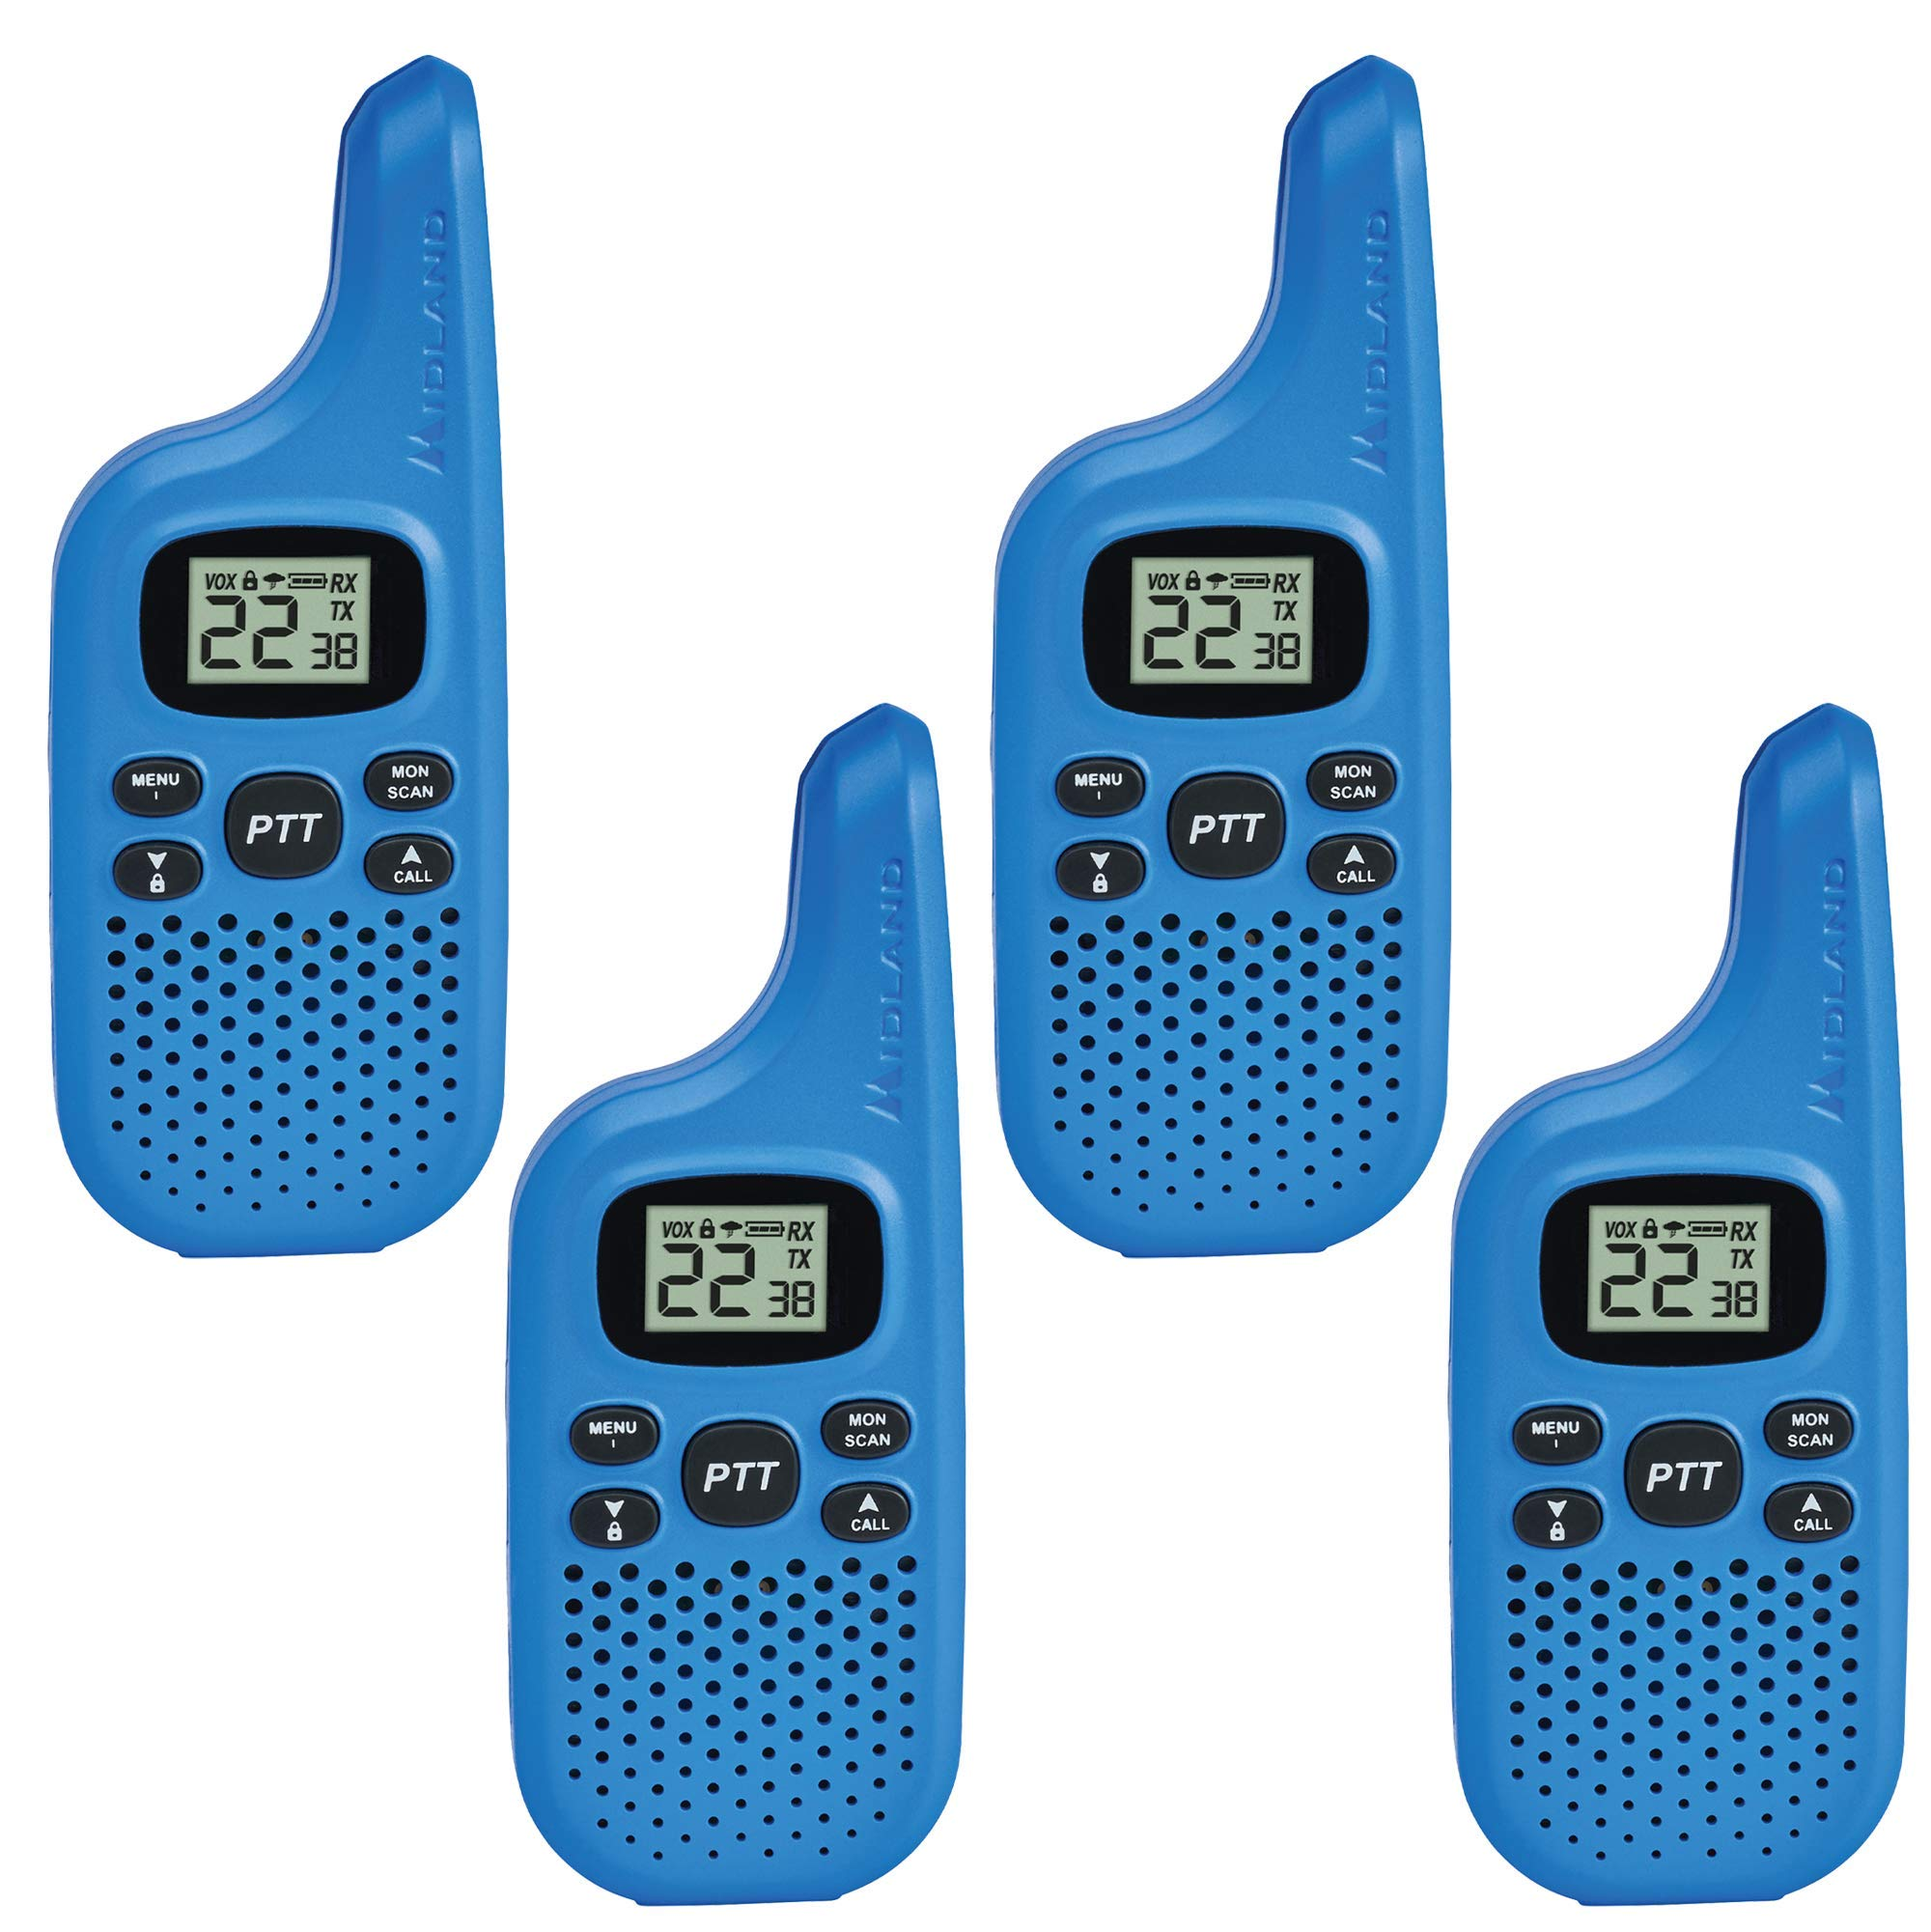 Midland - X-TALKER T20X4, Bright Color & Fun for Kids | 22 Channel FRS Walkie Talkie - Up to 16 Mile Range Two-Way Radio, 38 Privacy Codes, NOAA Weather Alert (4 Pack) (Blue) by Midland